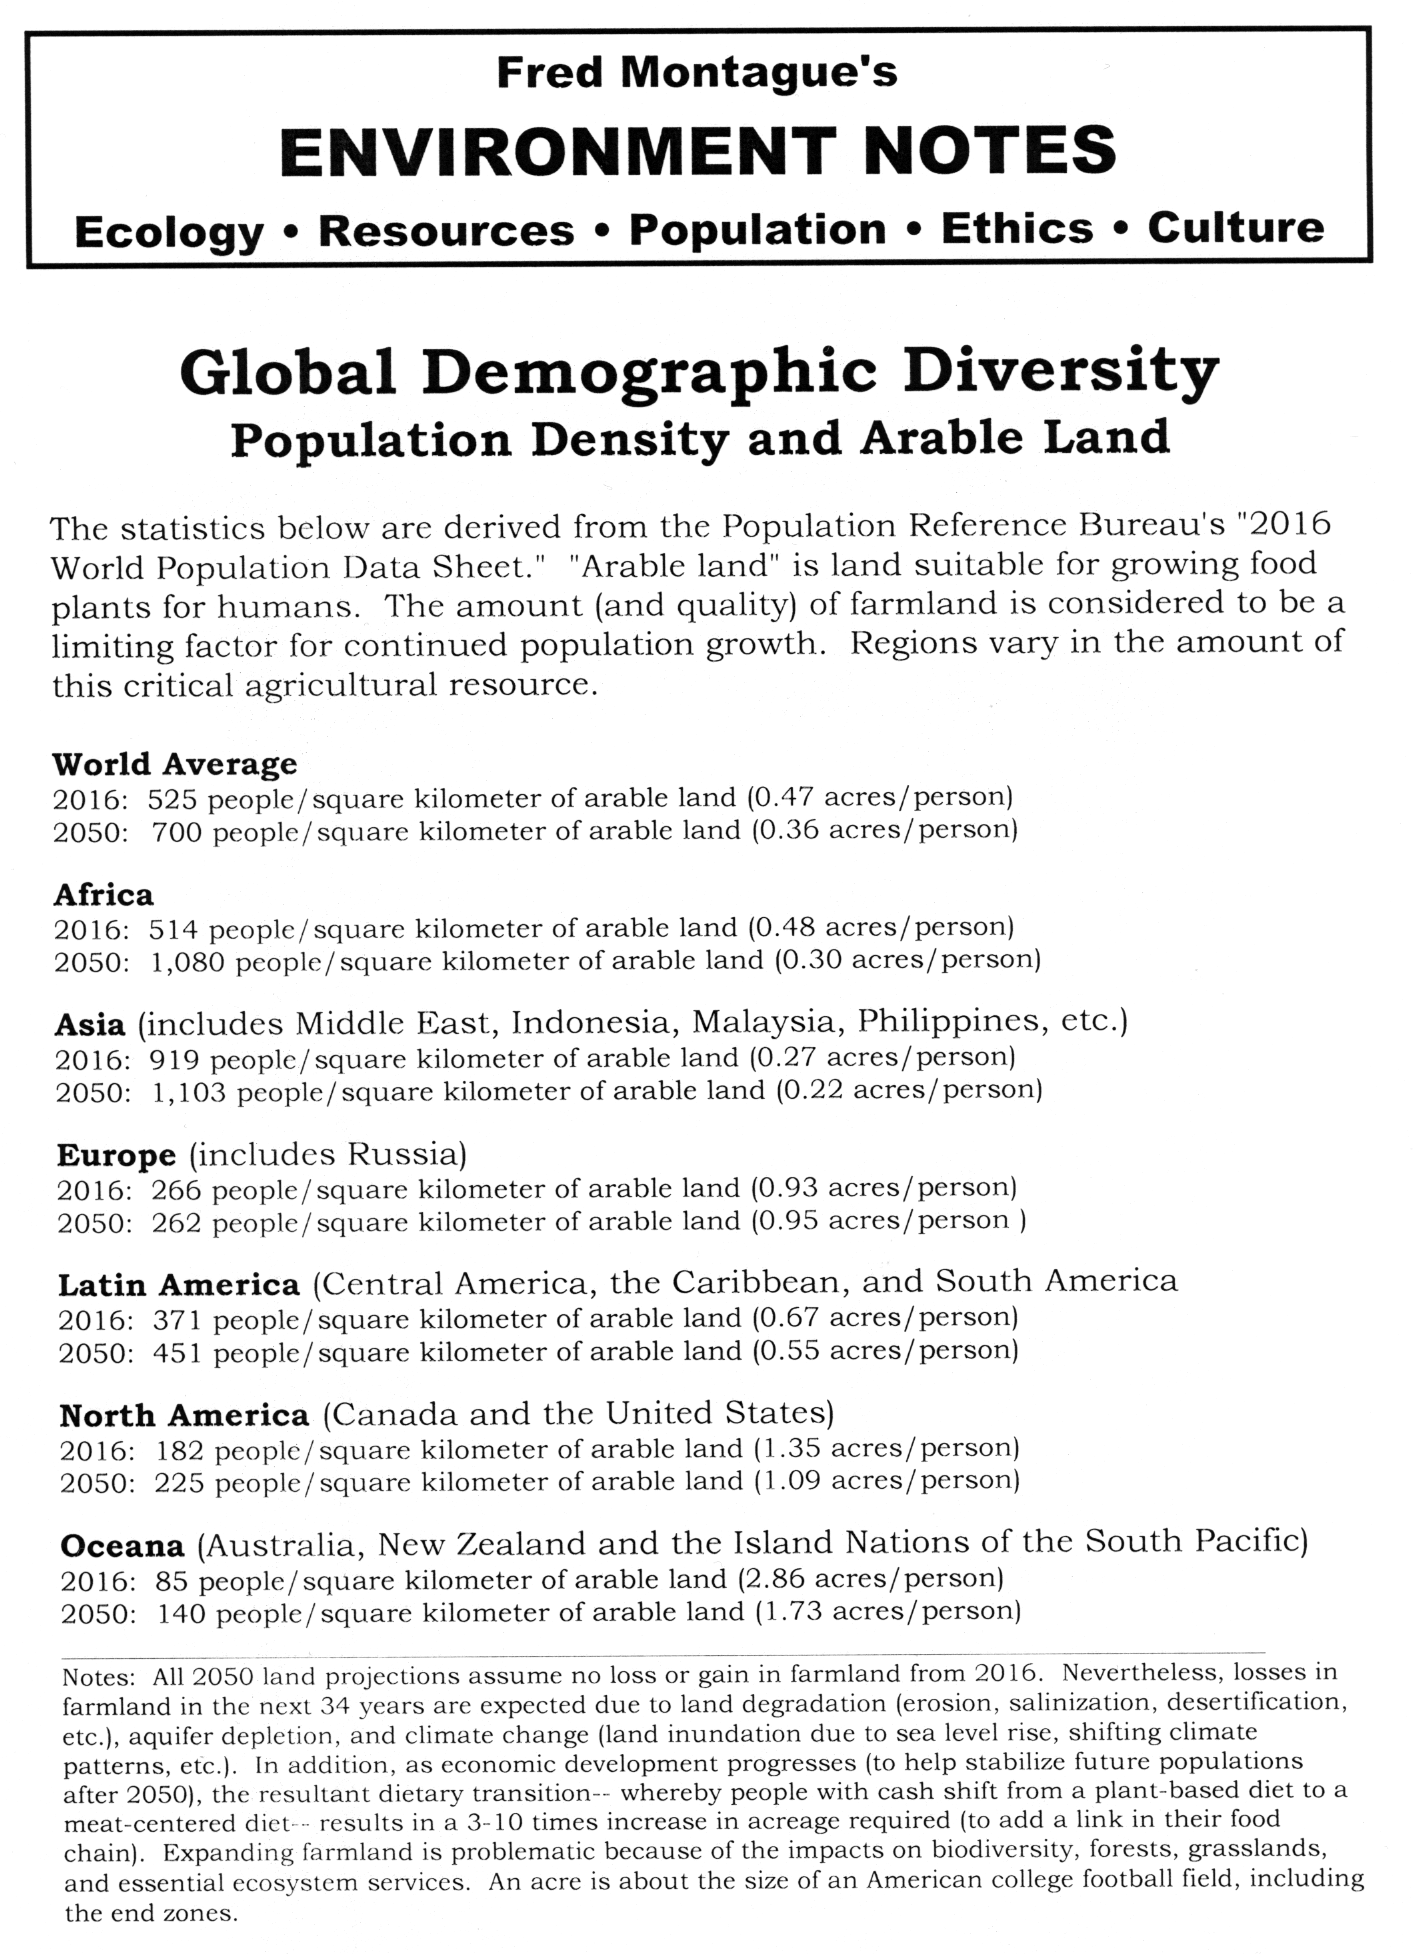 demographic_diversity_arable